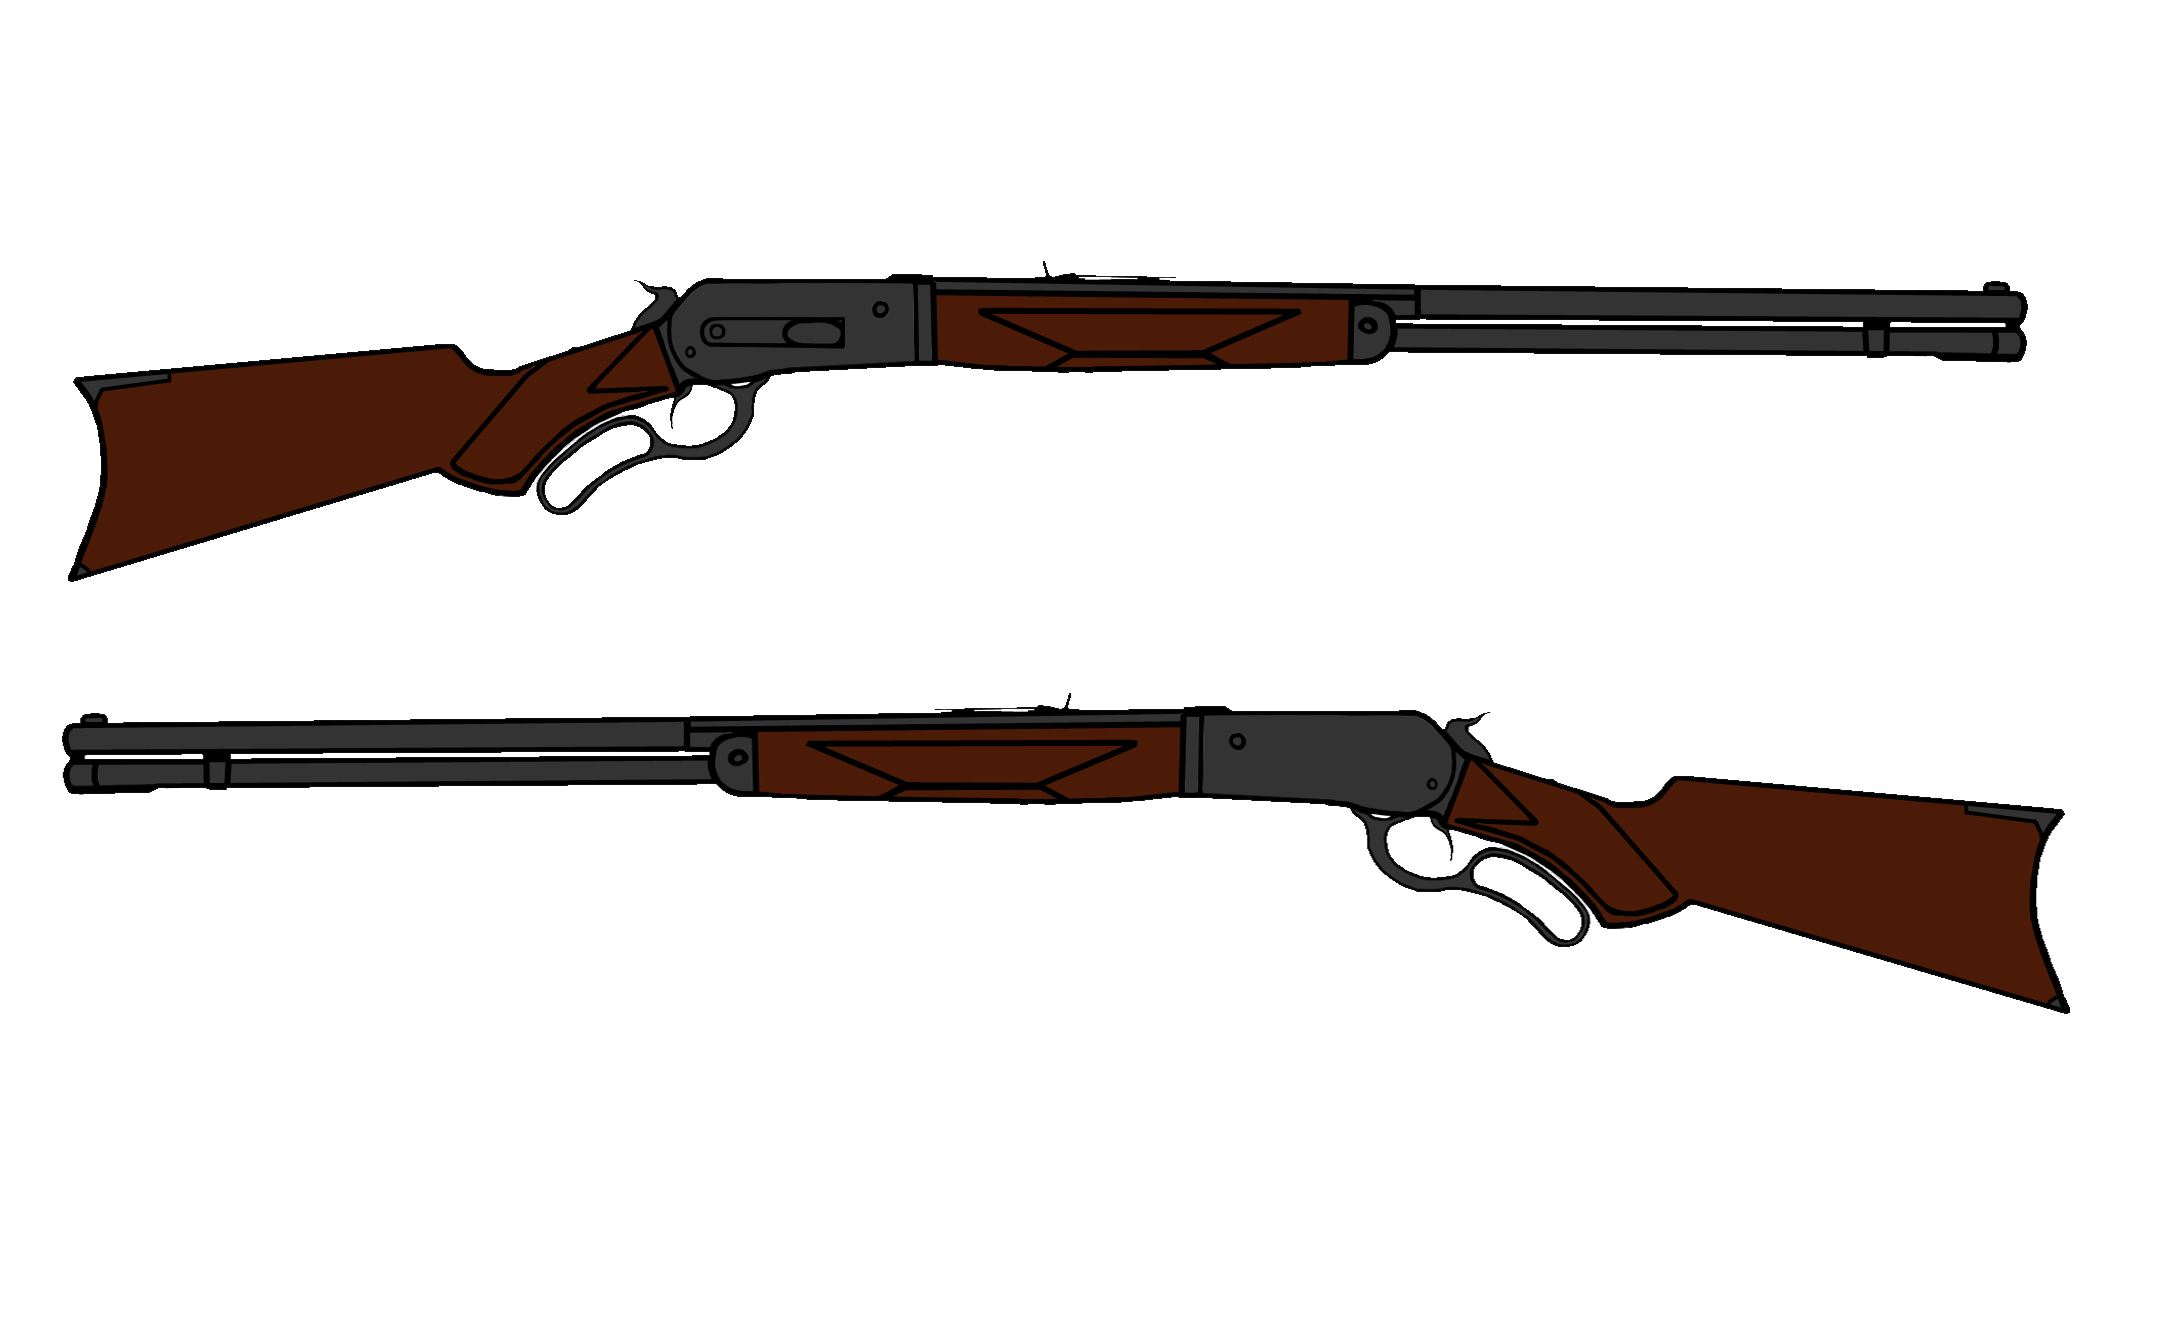 collection of drawing. Gun clipart lever action rifle